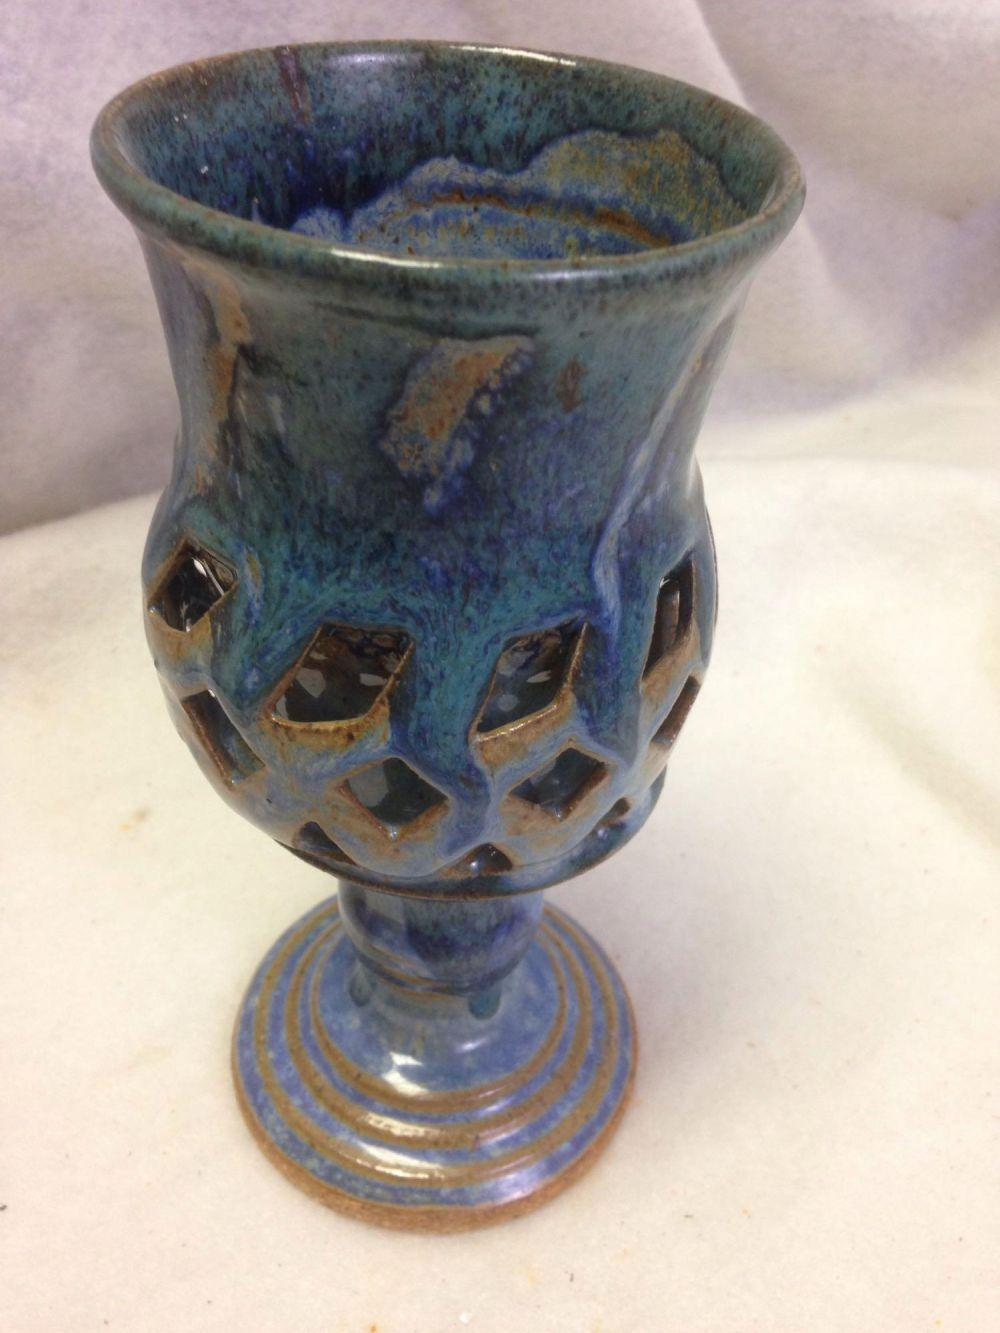 Lot 776: Nice woven clay 2 layer design wine glass goblet